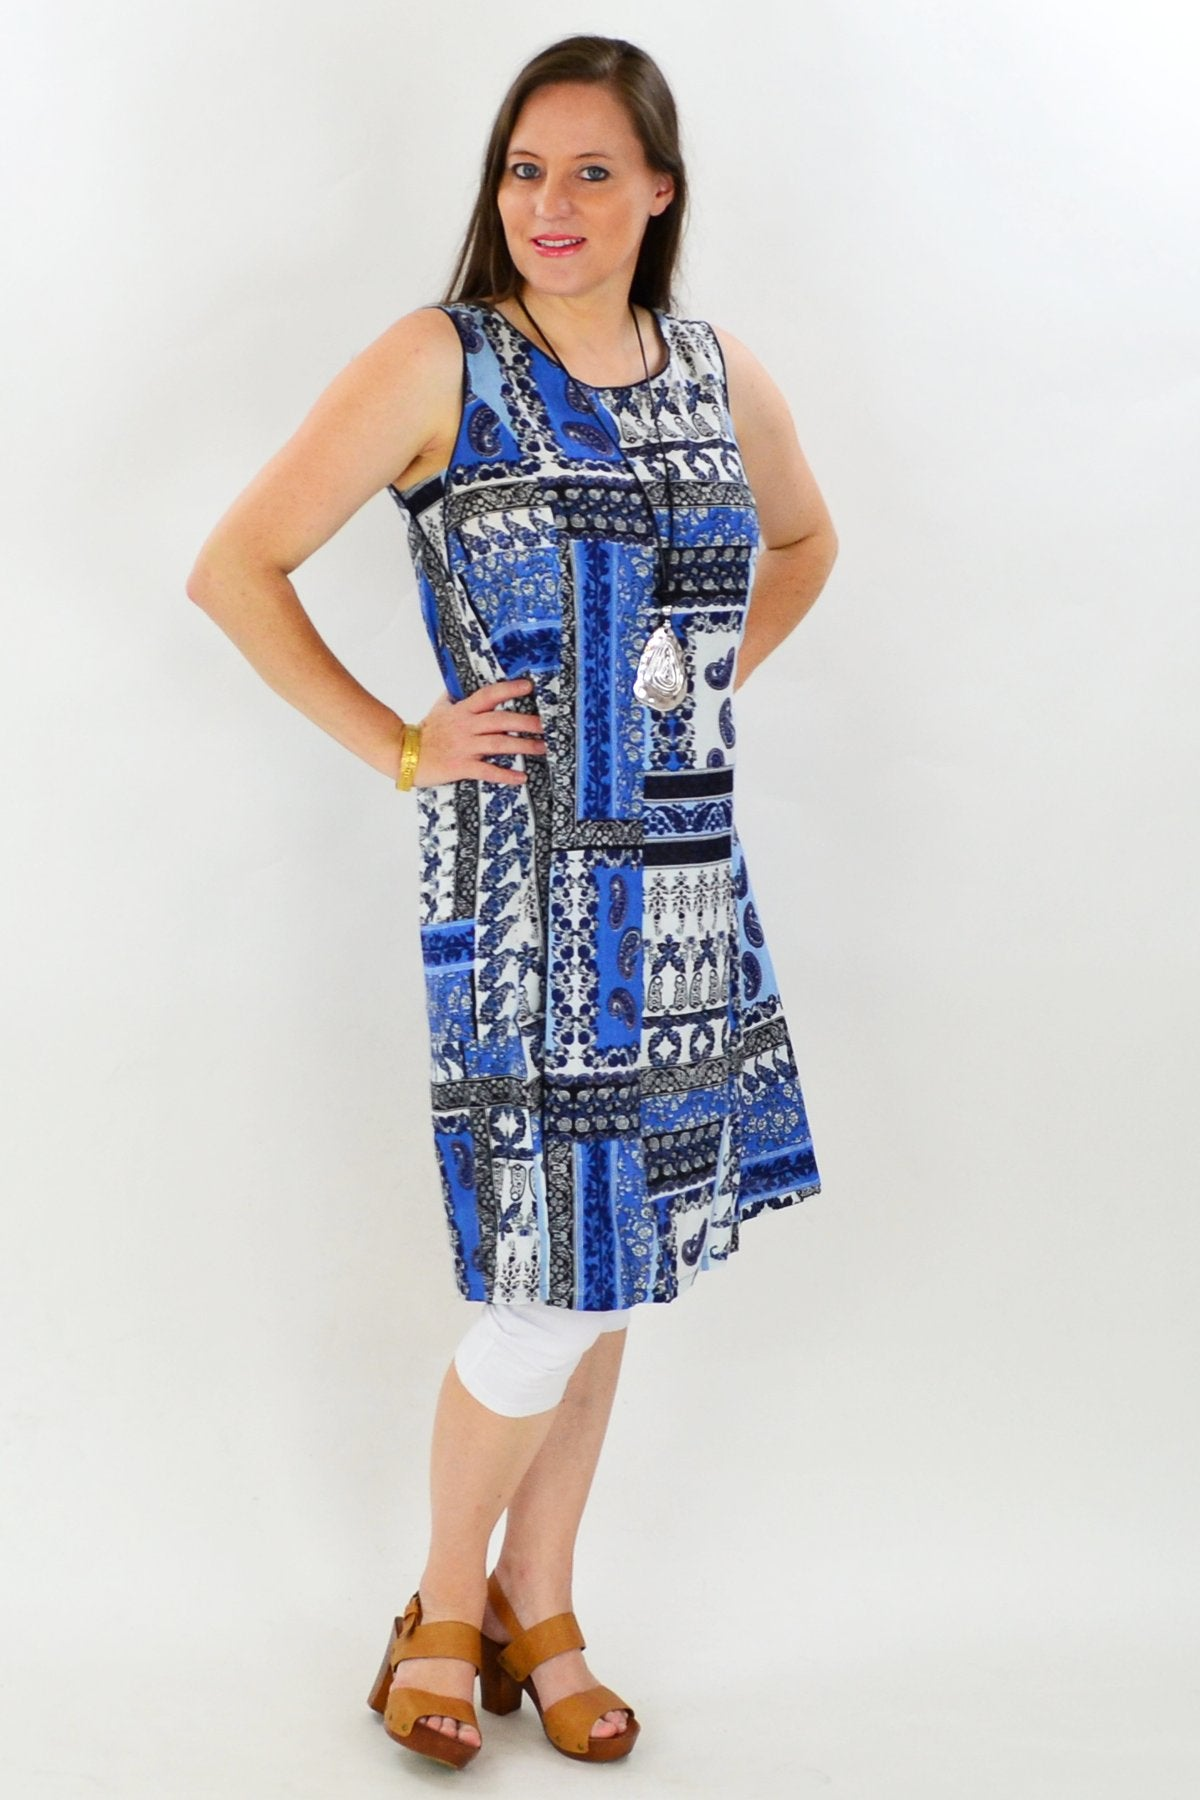 Orientique Mykonos Tunic Dress - at I Love Tunics @ www.ilovetunics.com = Number One! Tunics Destination